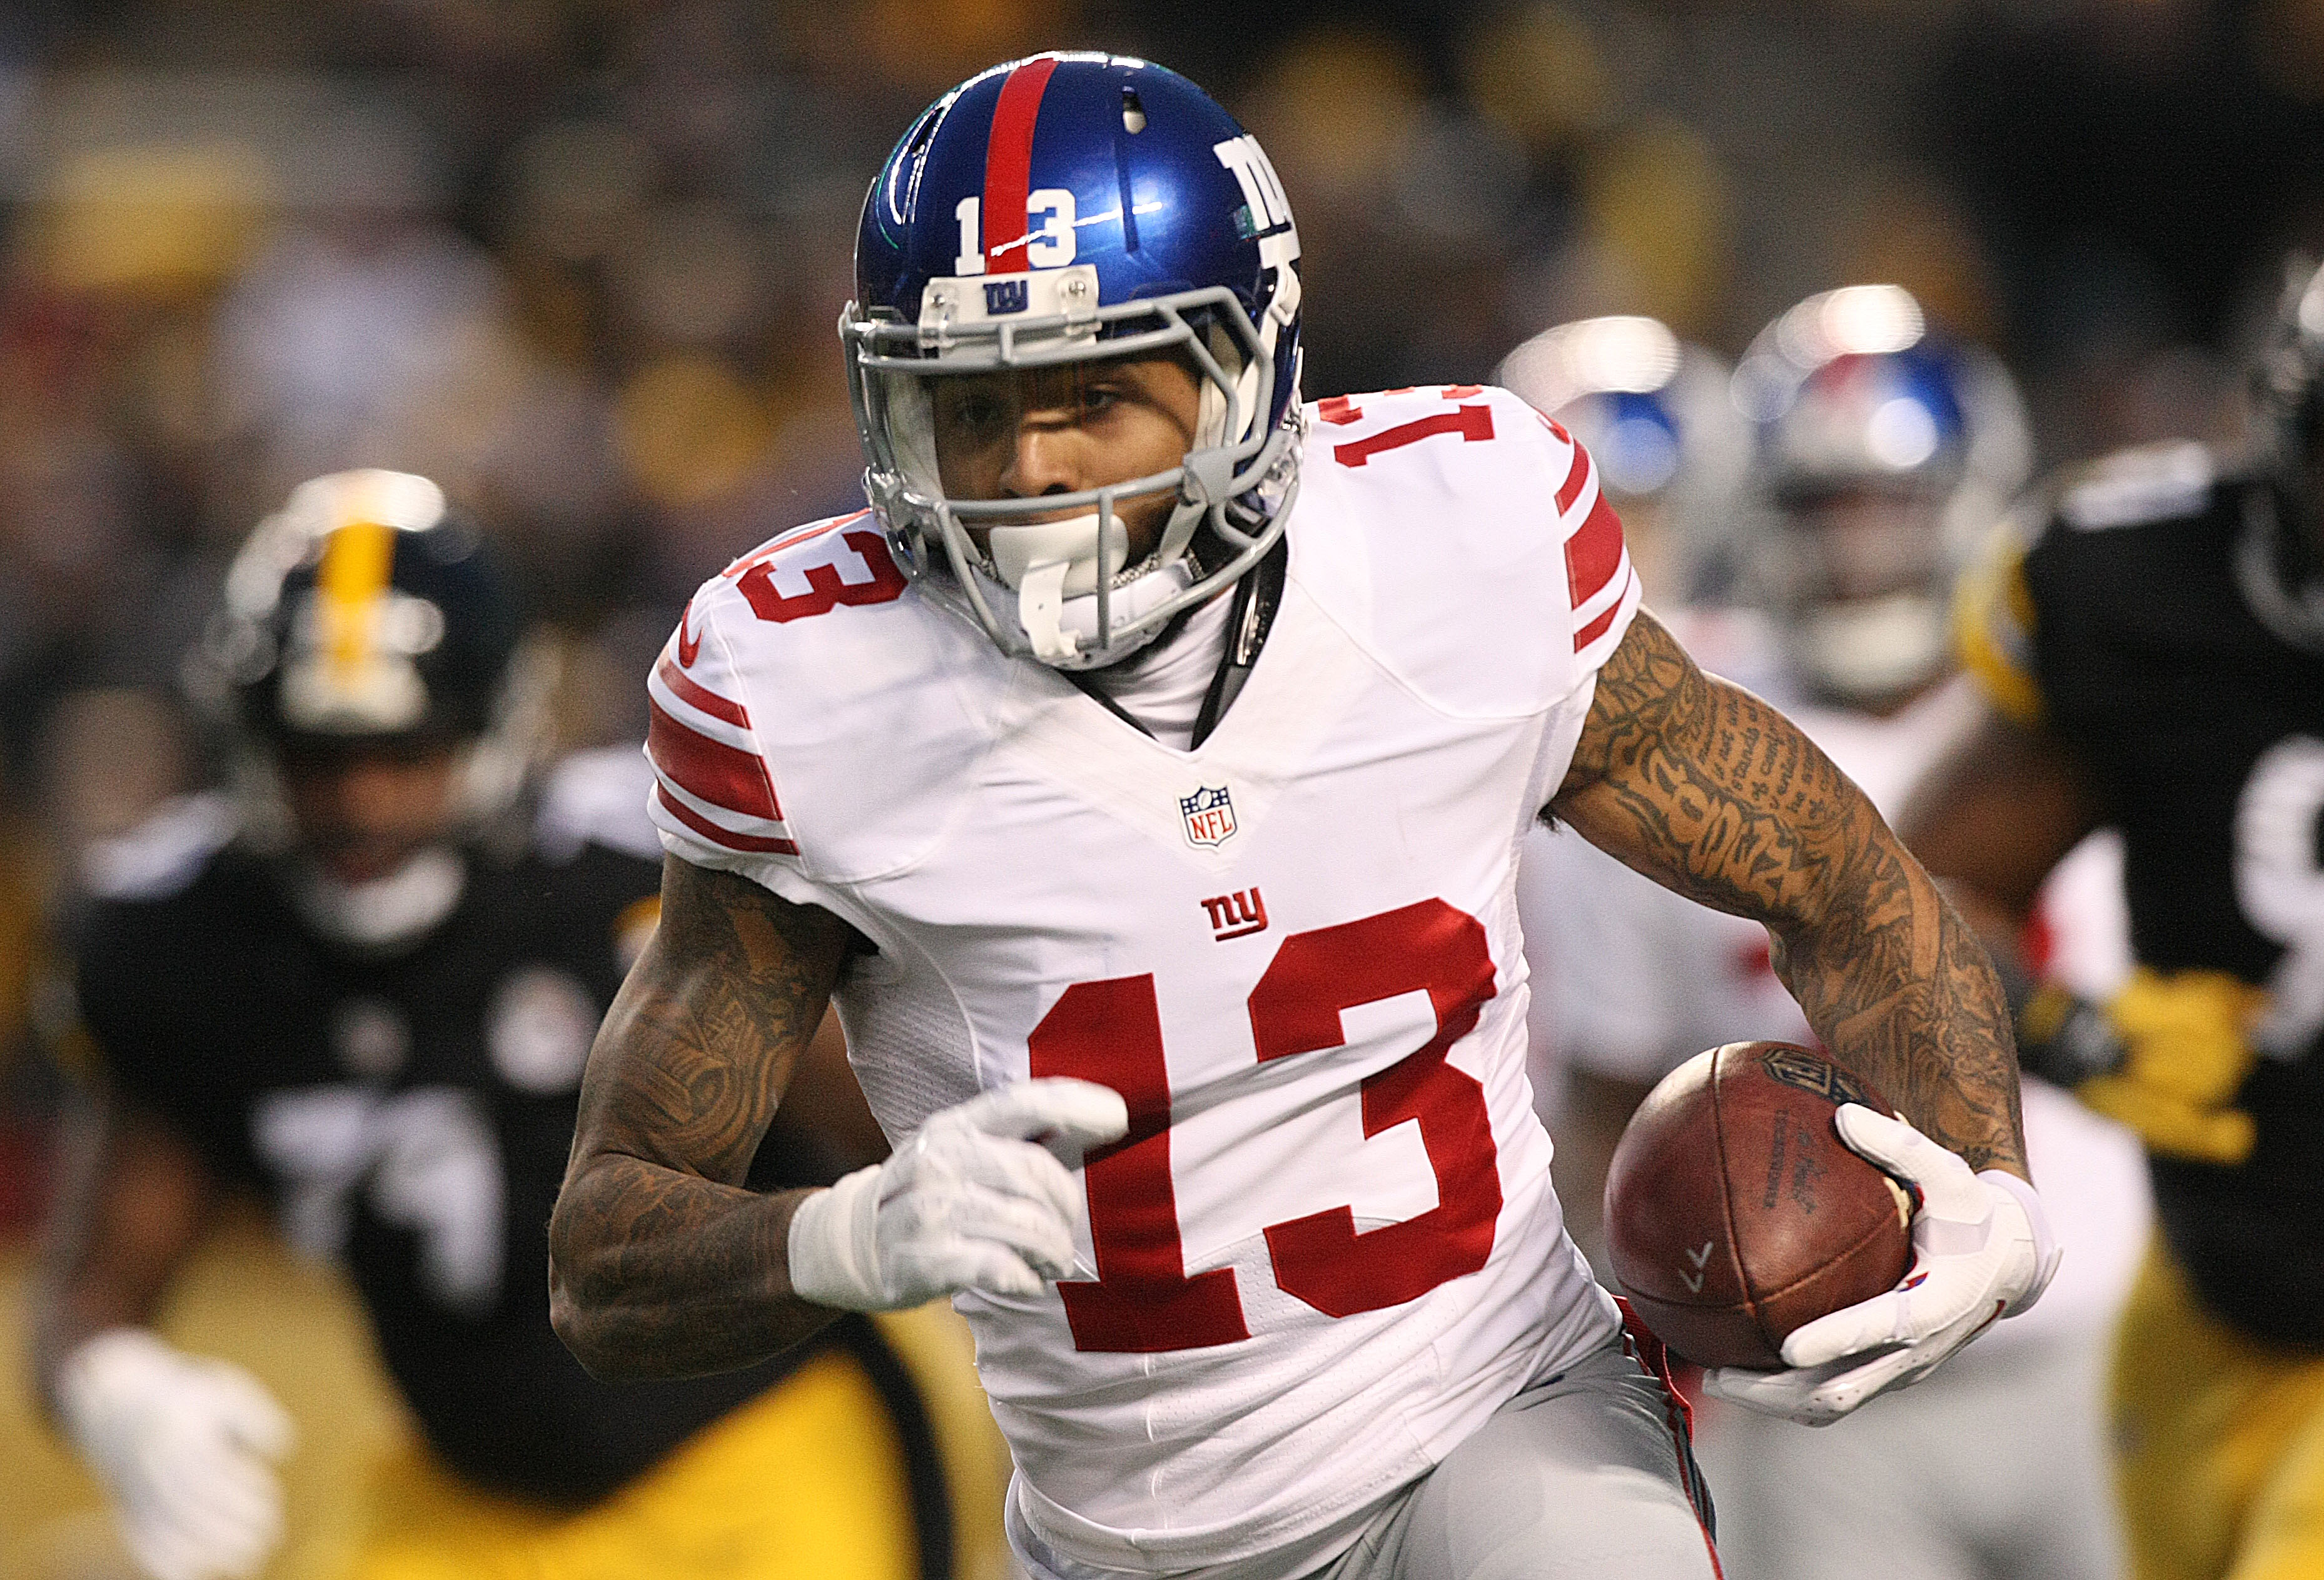 9725516-nfl-new-york-giants-at-pittsburgh-steelers